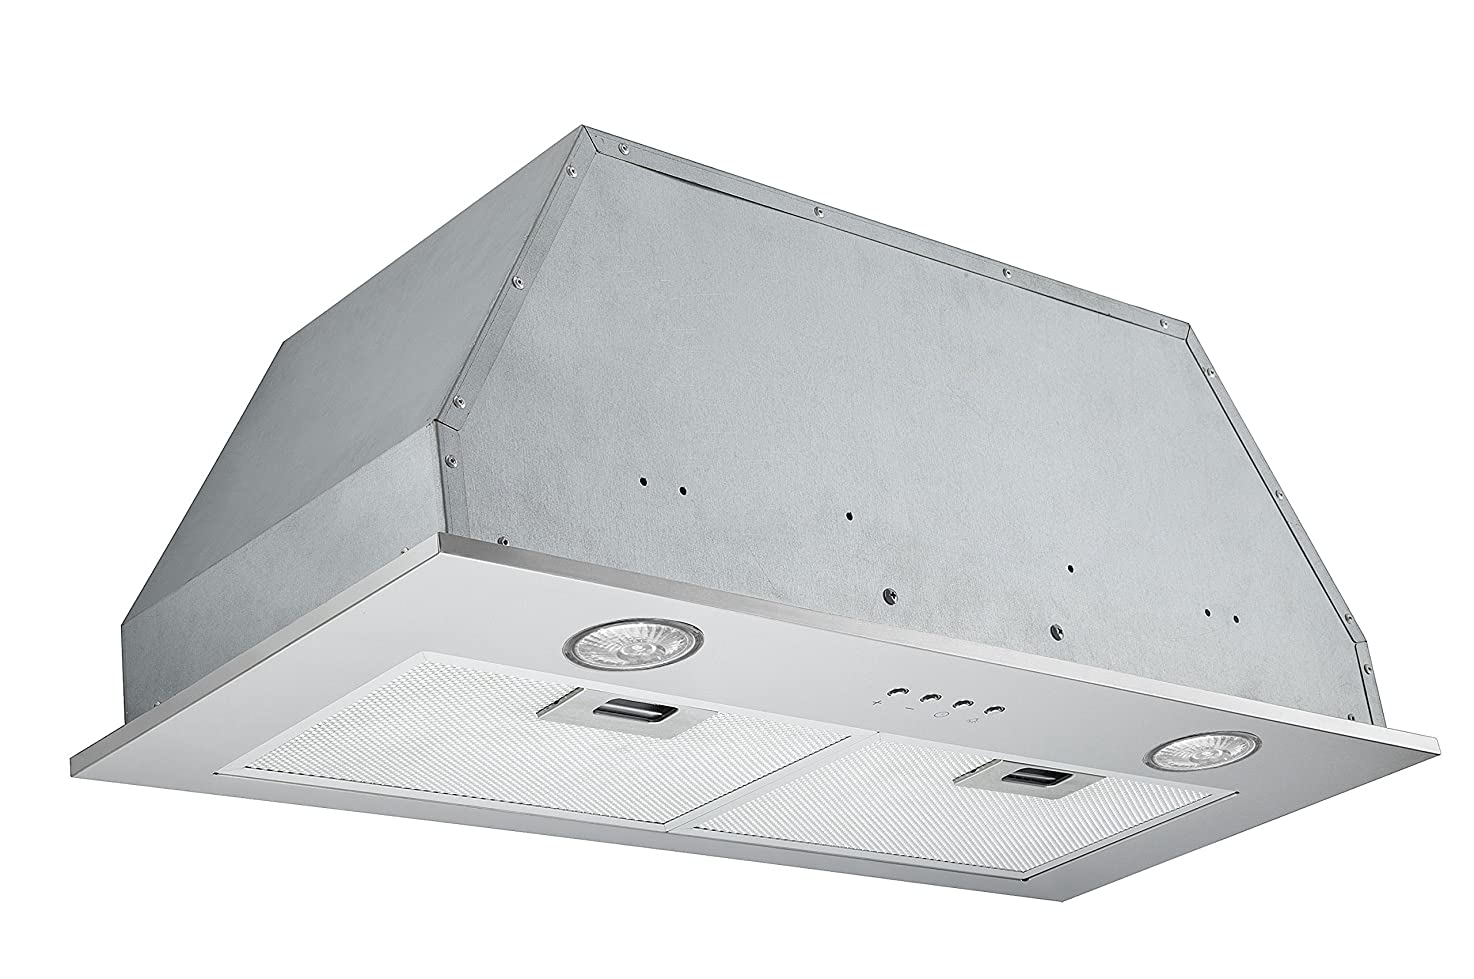 Ancona Stainless Steel 450 CFM Built-In Range Hood, 28-Inch leqhmimtczlhu8